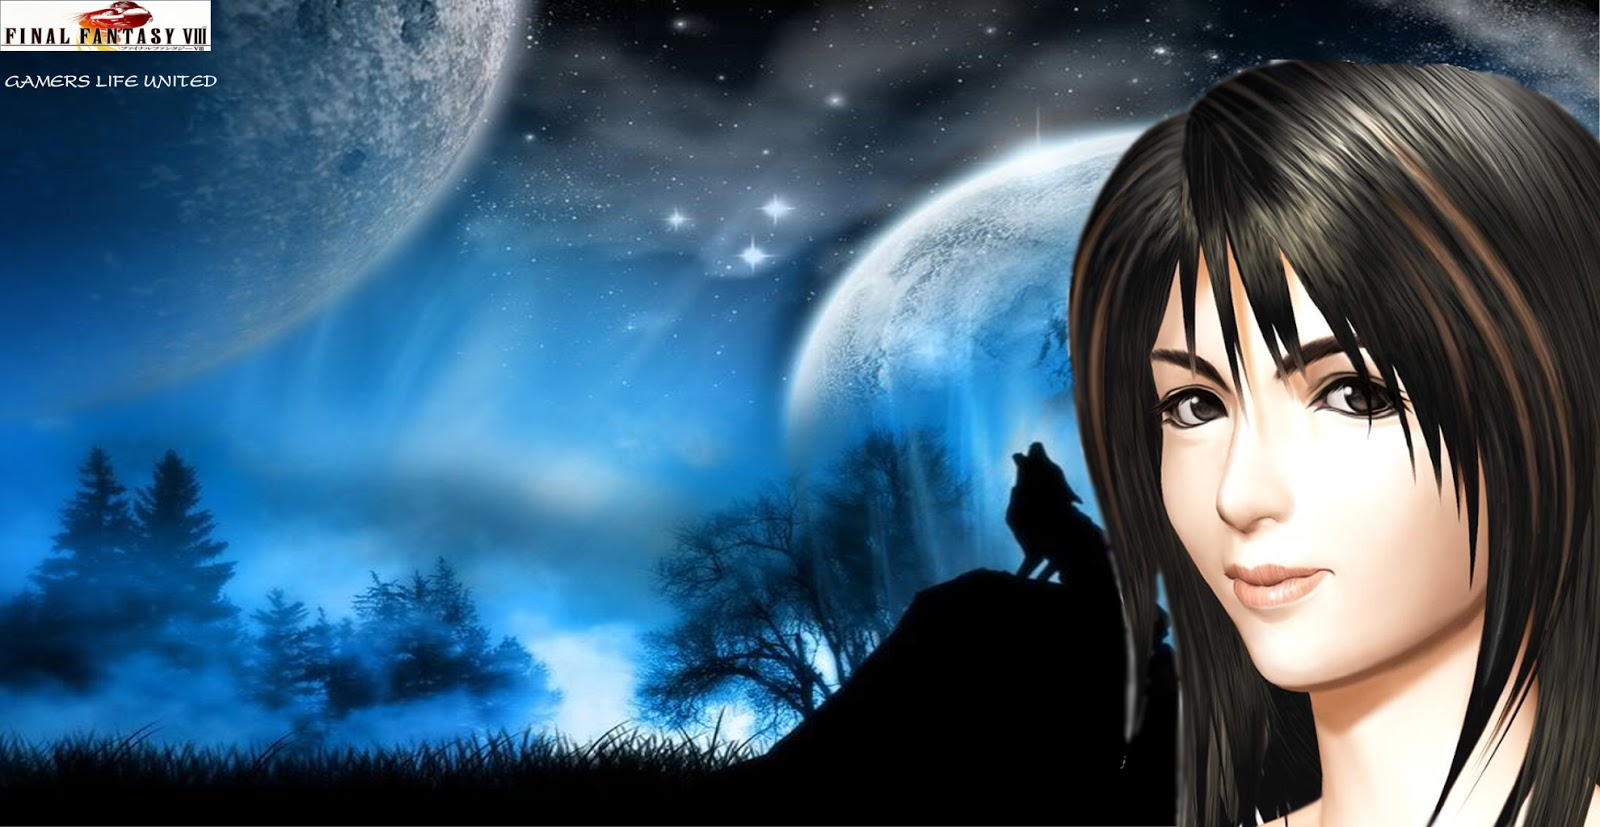 Wallpaper Final Fantasy Viii Jessica Alba Hd Iphone Wallpaper 1600x827